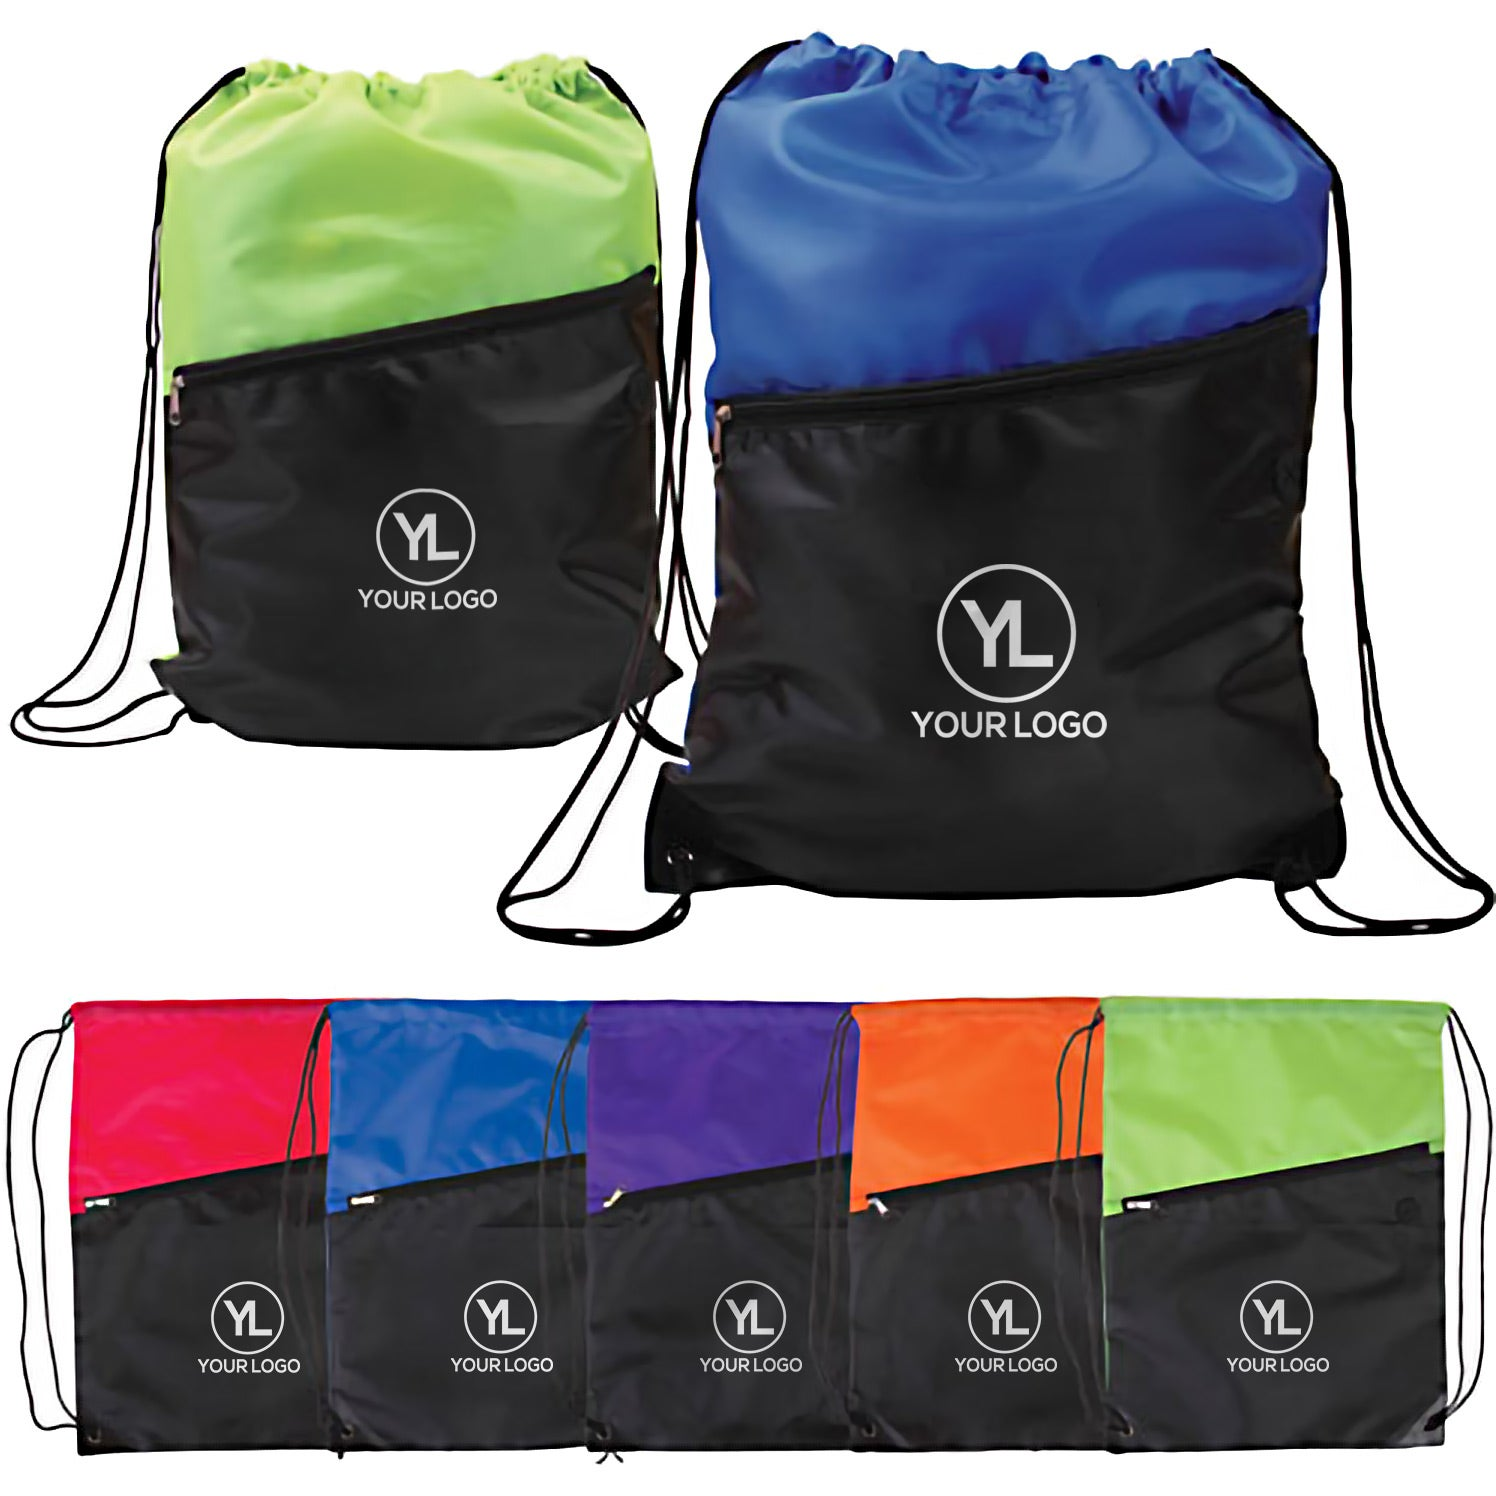 Two-Tone Drawstring Backpack with Zipper